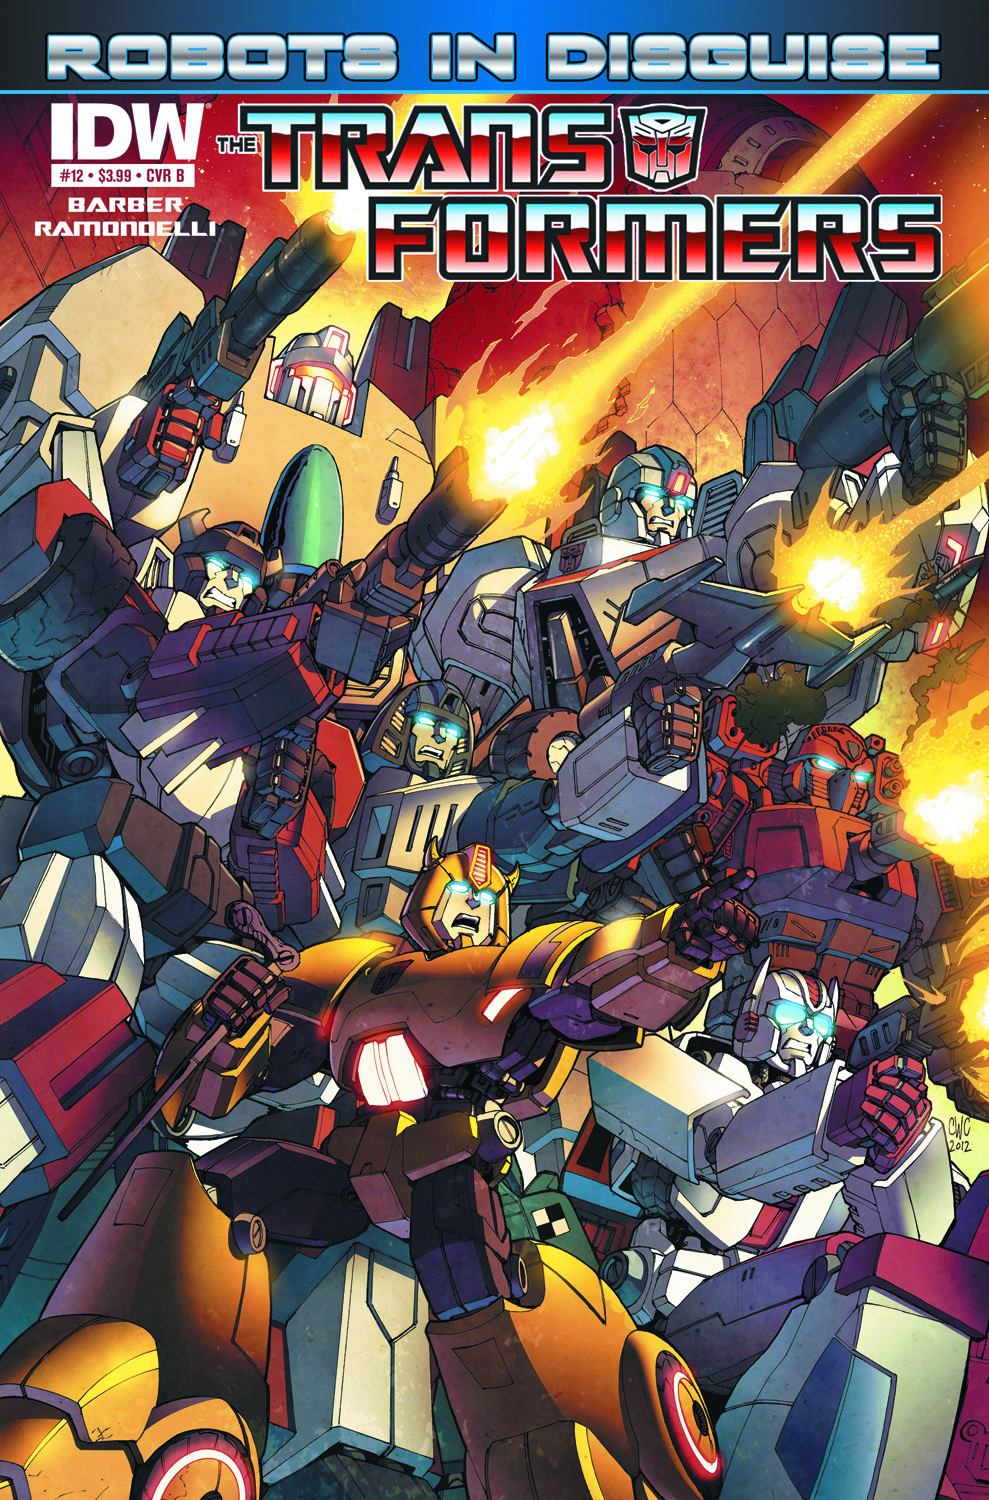 TRANSFORMERS ROBOTS IN DISGUISE #12